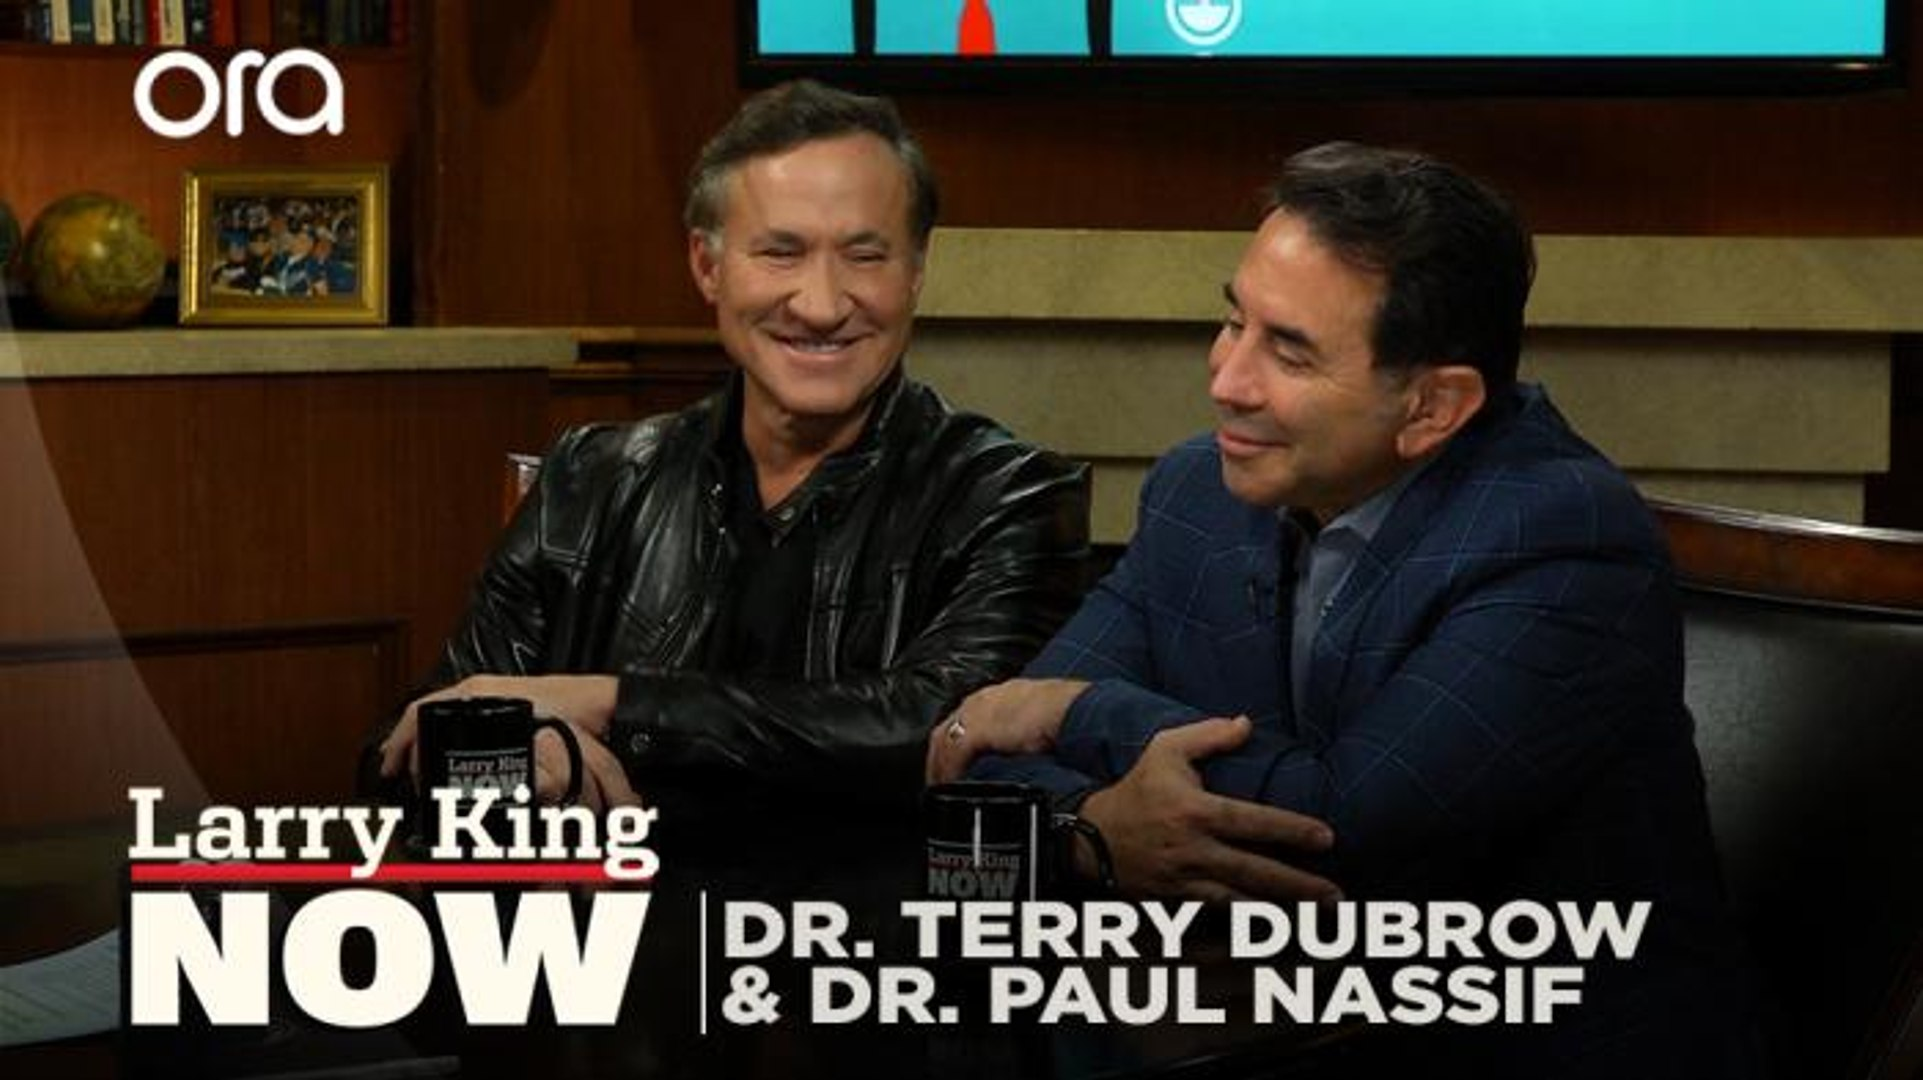 If Only You Knew: Dr. Dubrow and Dr. Nassif